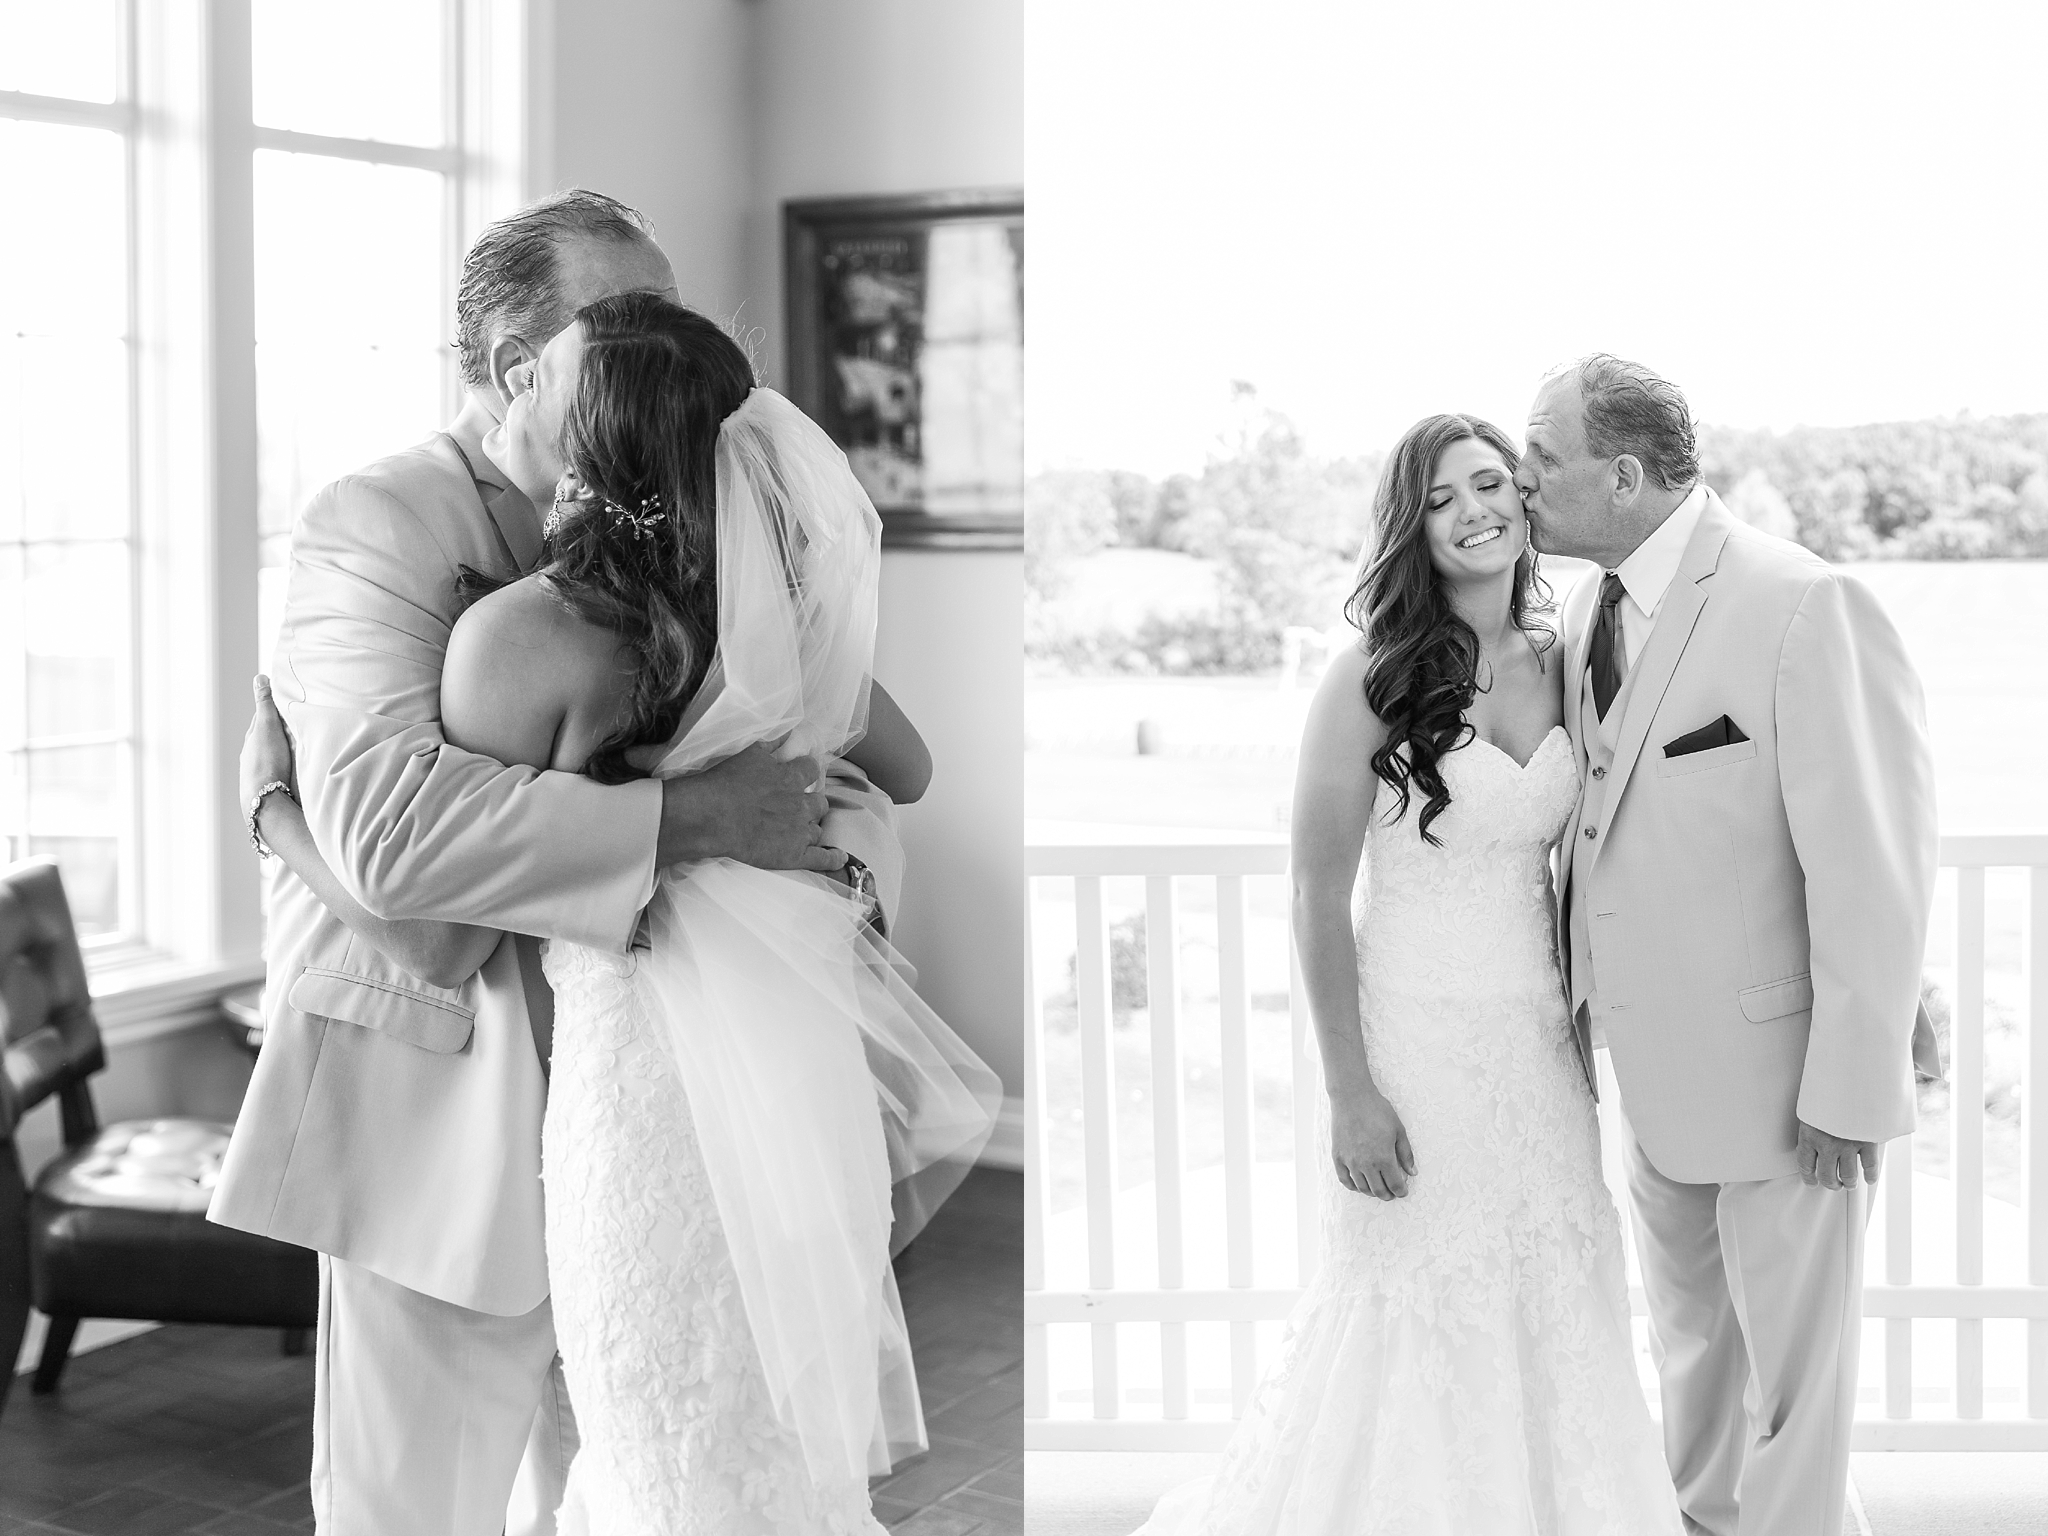 candid-timeless-wedding-photos-at-the-captains-club-in-grand-blanc-michigan-by-courtney-carolyn-photography_0027.jpg